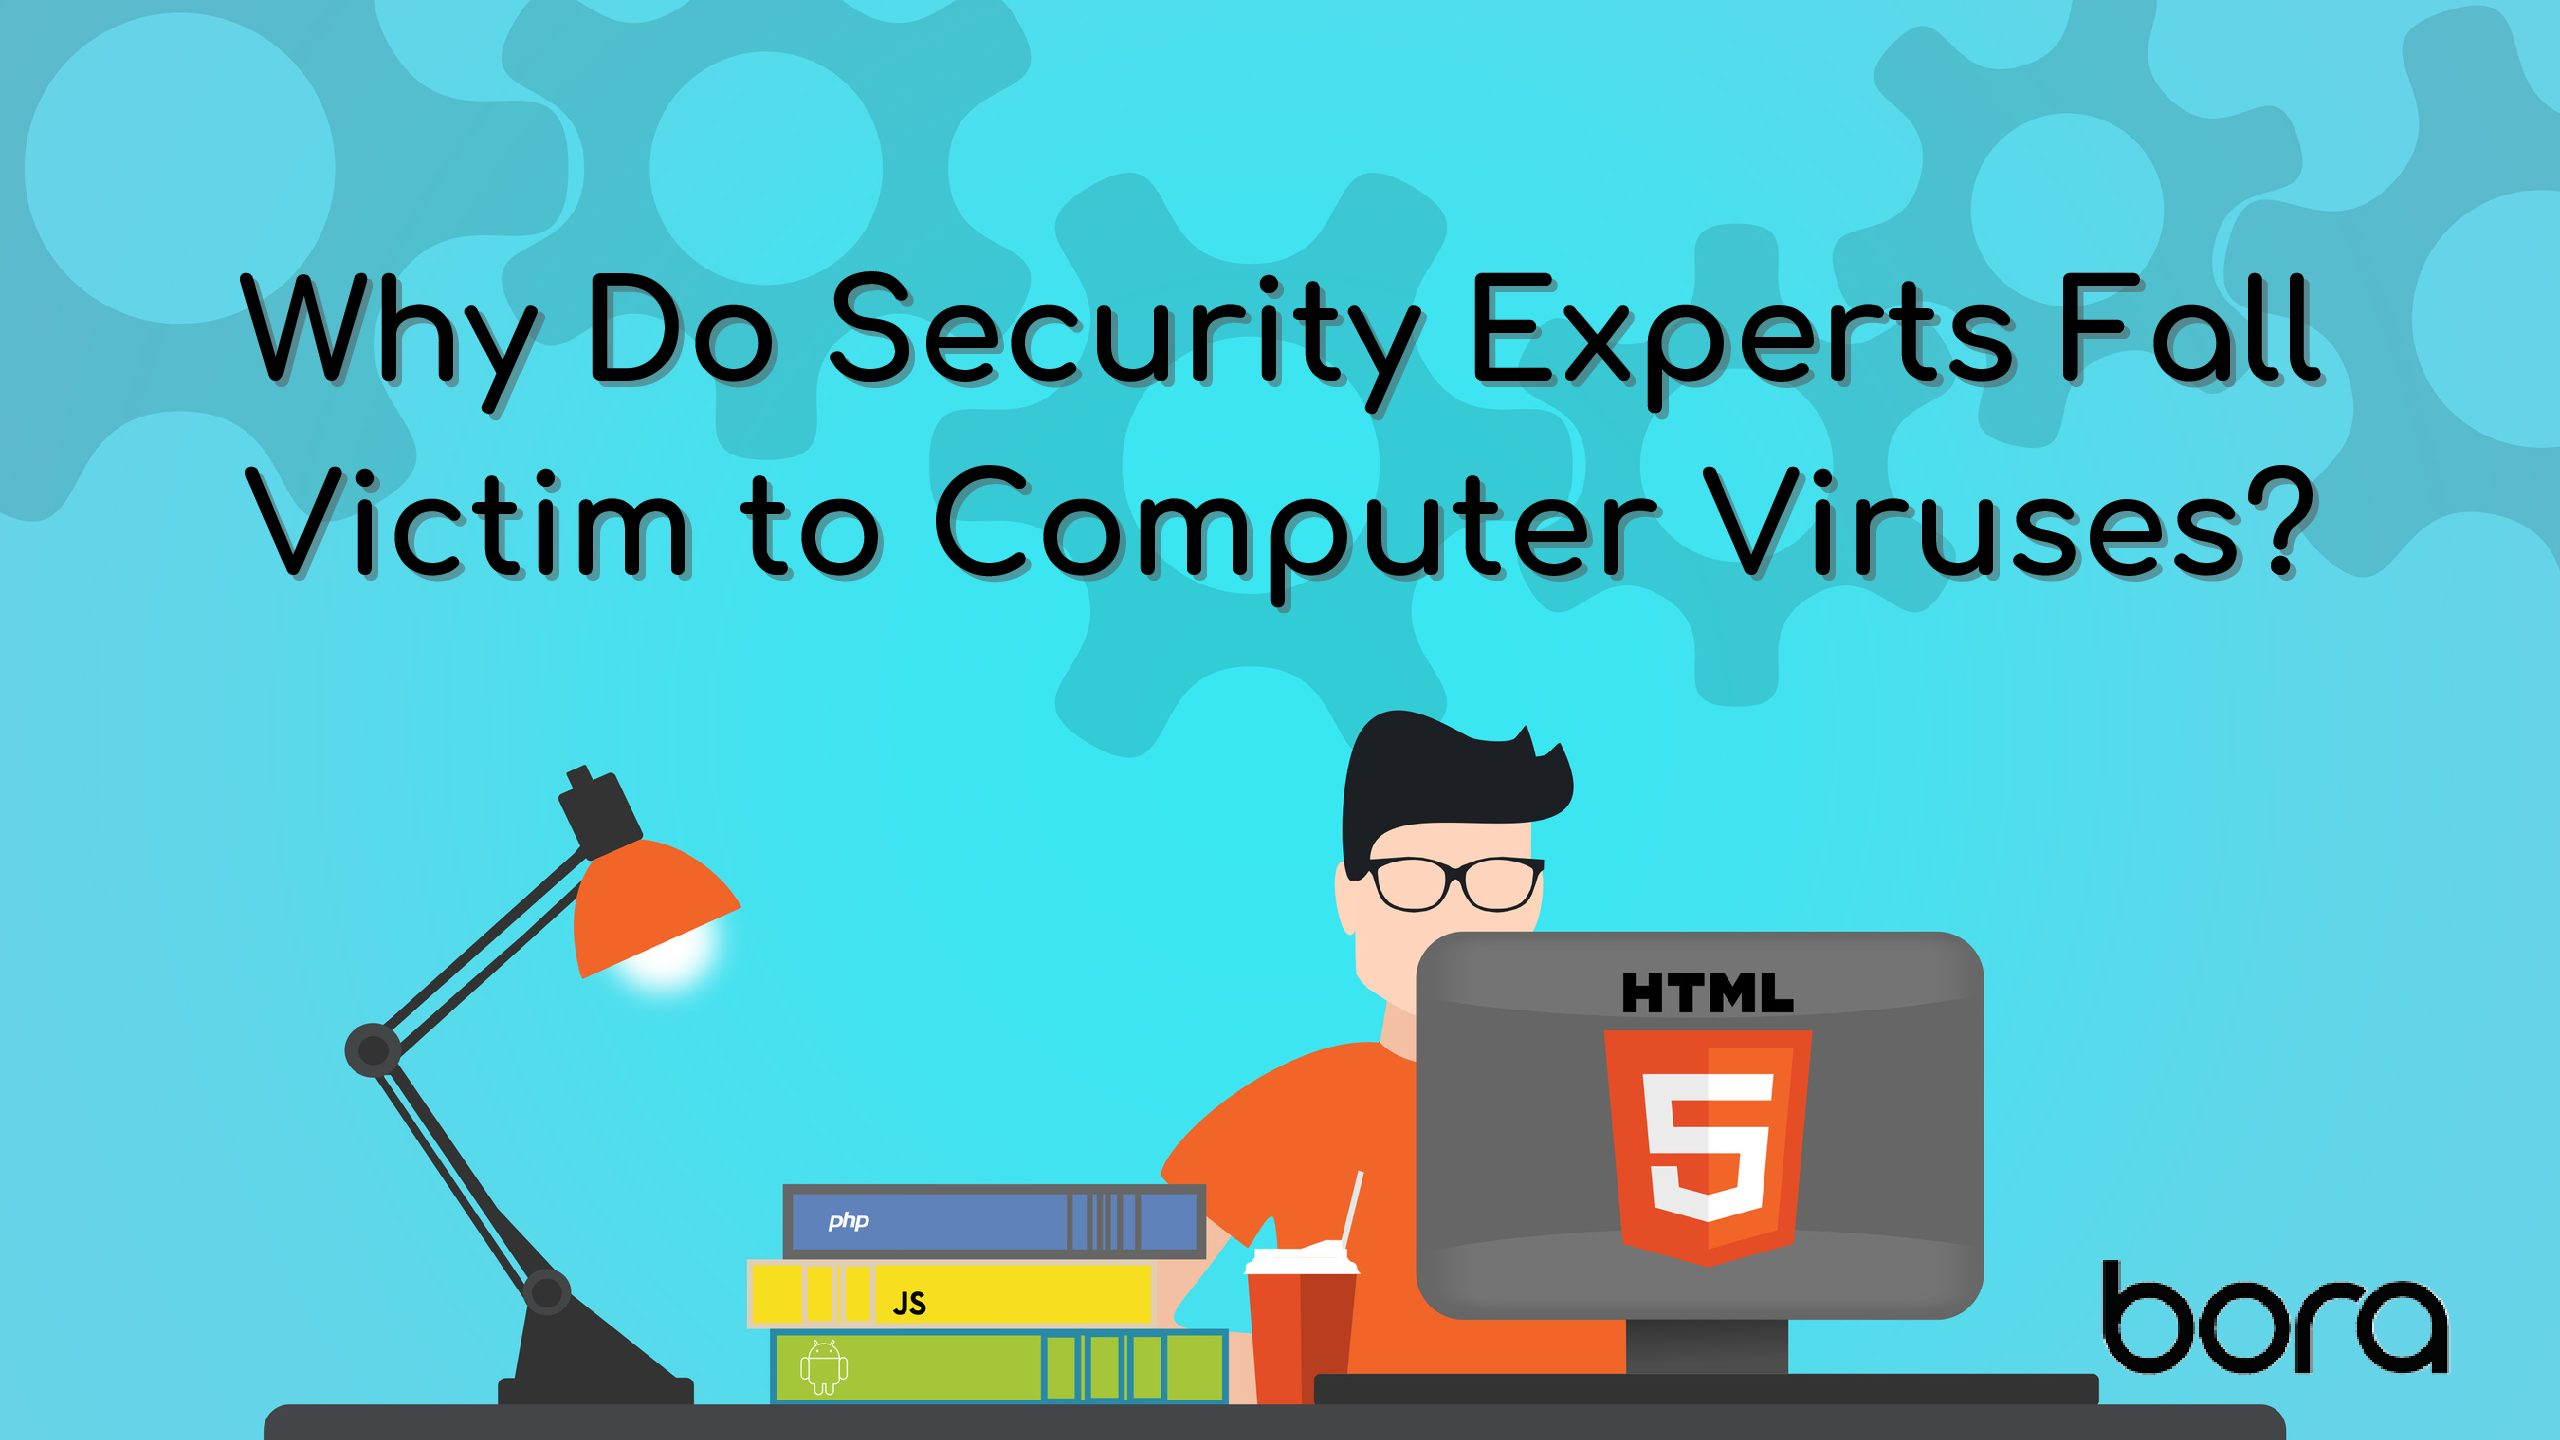 Why Do Security Experts Fall Victim to Computer Viruses?